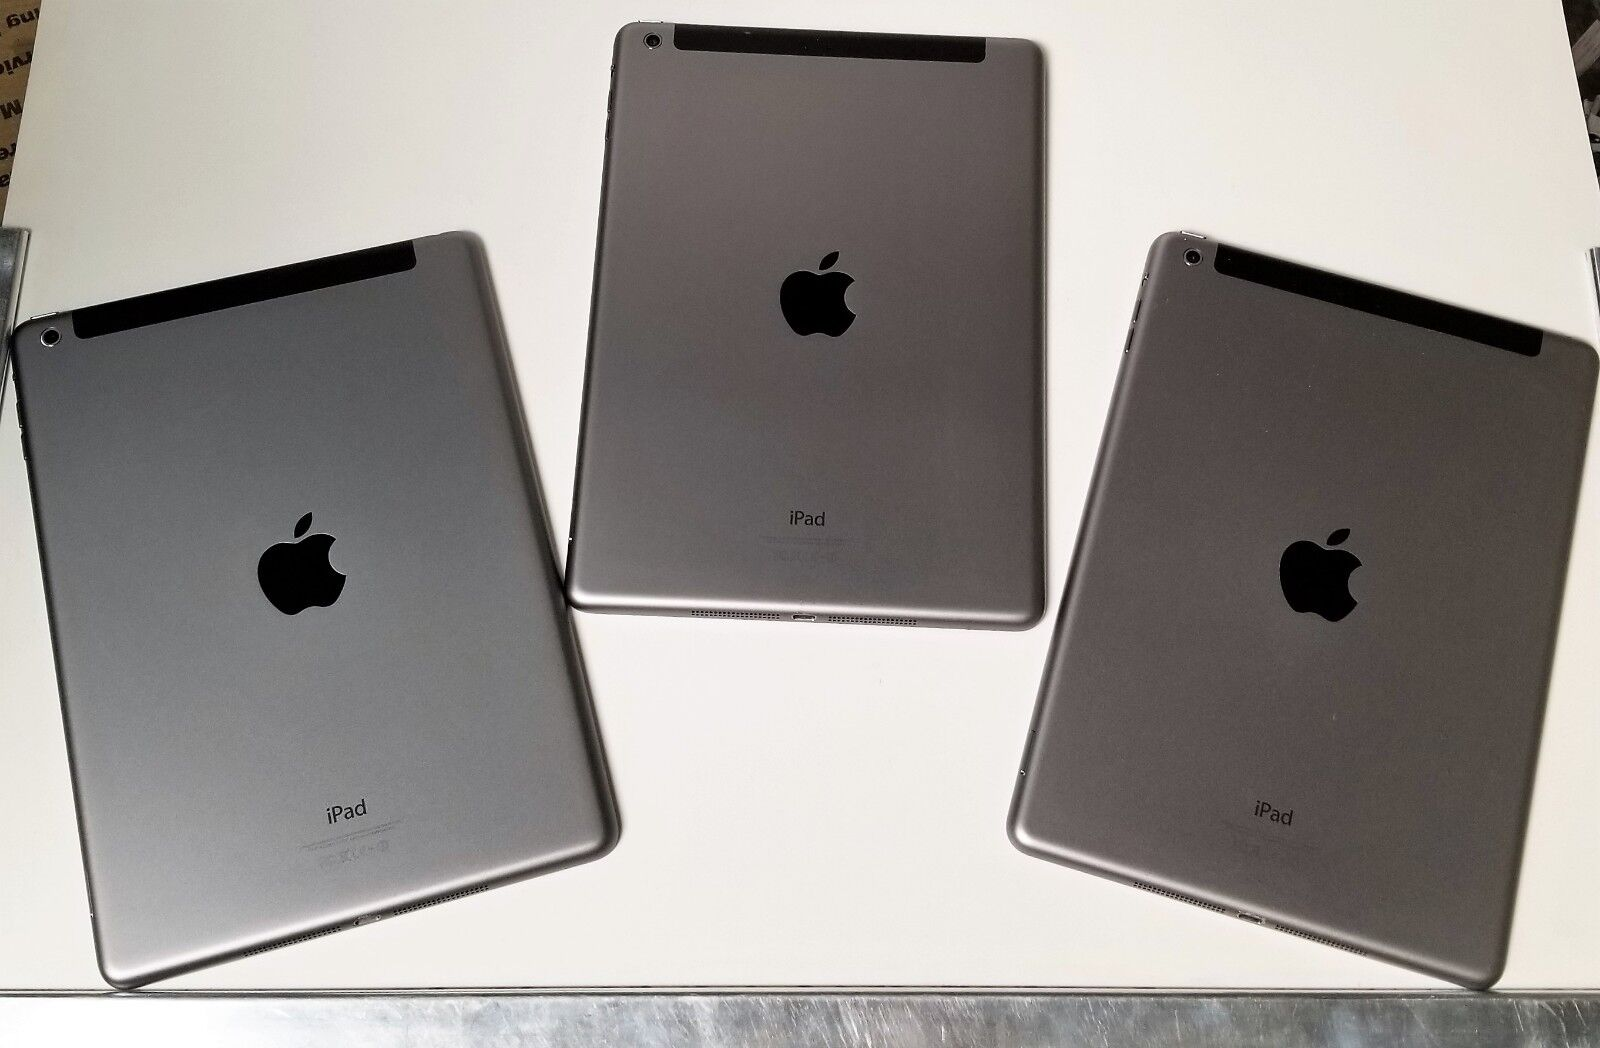 Apple iPad Air 16GB, Wi-Fi + Cellular (Verizon), 9.7in - Space Gray